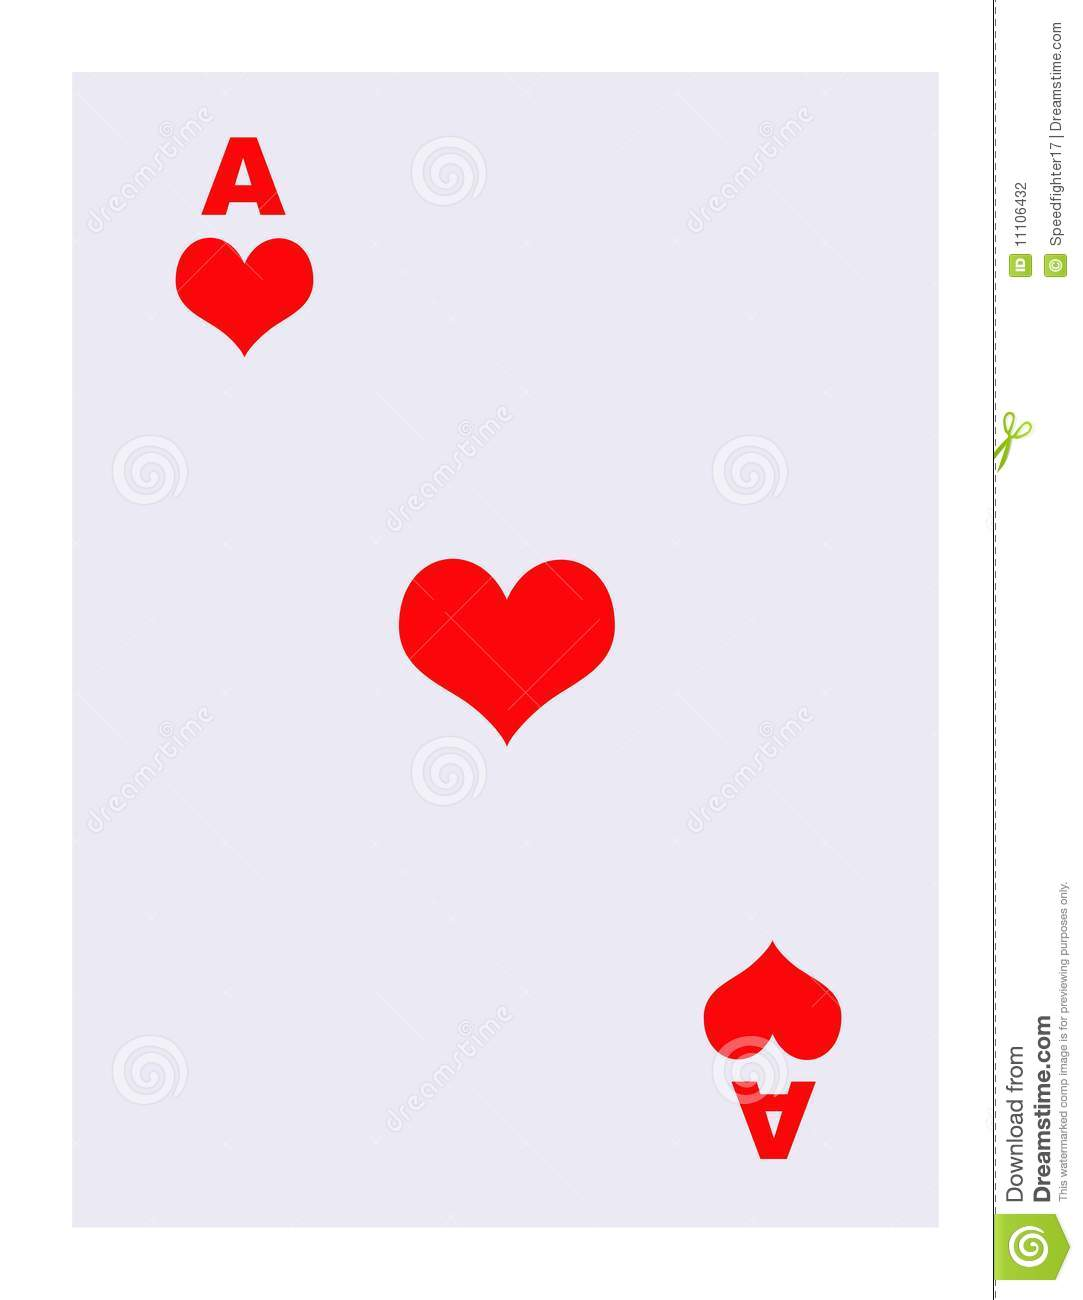 Ace of hearts clipart clip art transparent download Ace Of Hearts Playing Card Stock Photography - Image: 11106432 clip art transparent download